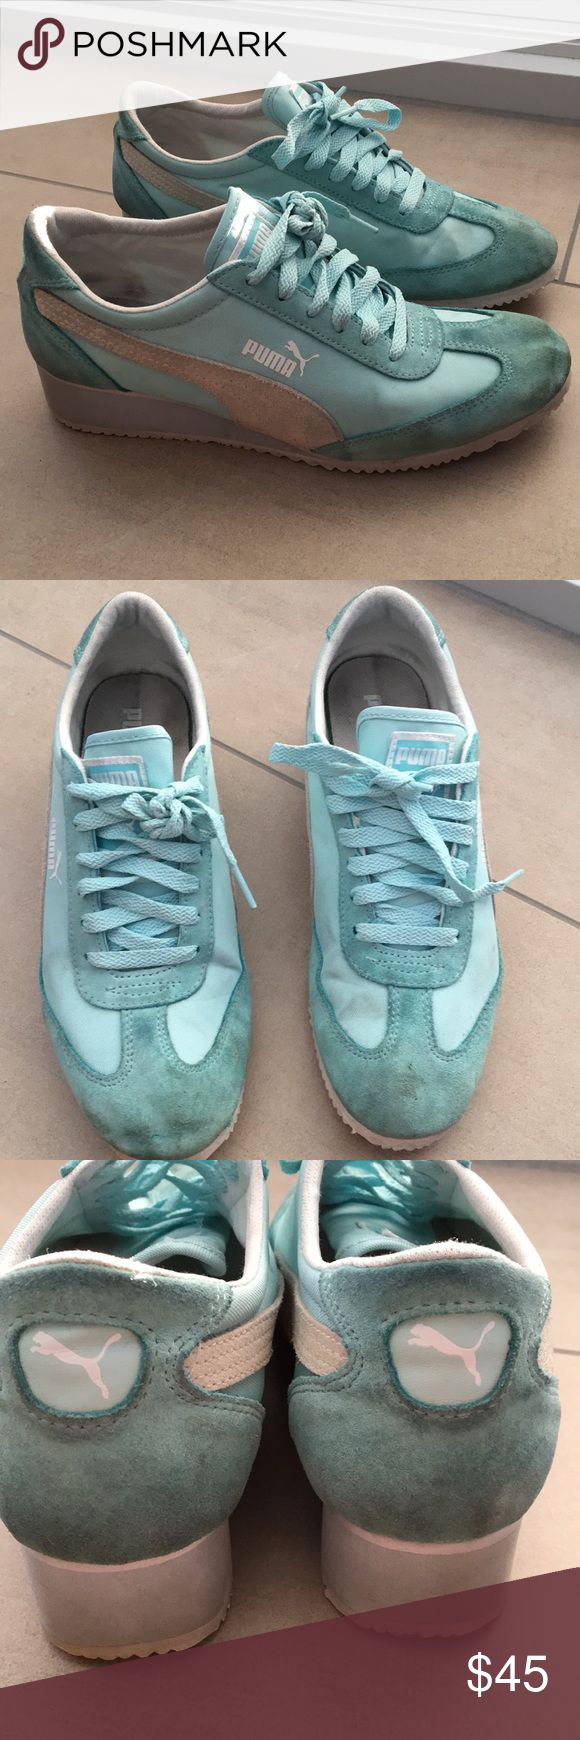 🔵Puma Light Blue Sneakers🔵make me an offer‼️ Puma sneakers in used condition, these have a lot of life left! Perfect spring shoes in a cute light blue color with suede detailing. Price is not firm, so make me an offer! ‼️ Puma Shoes Sneakers